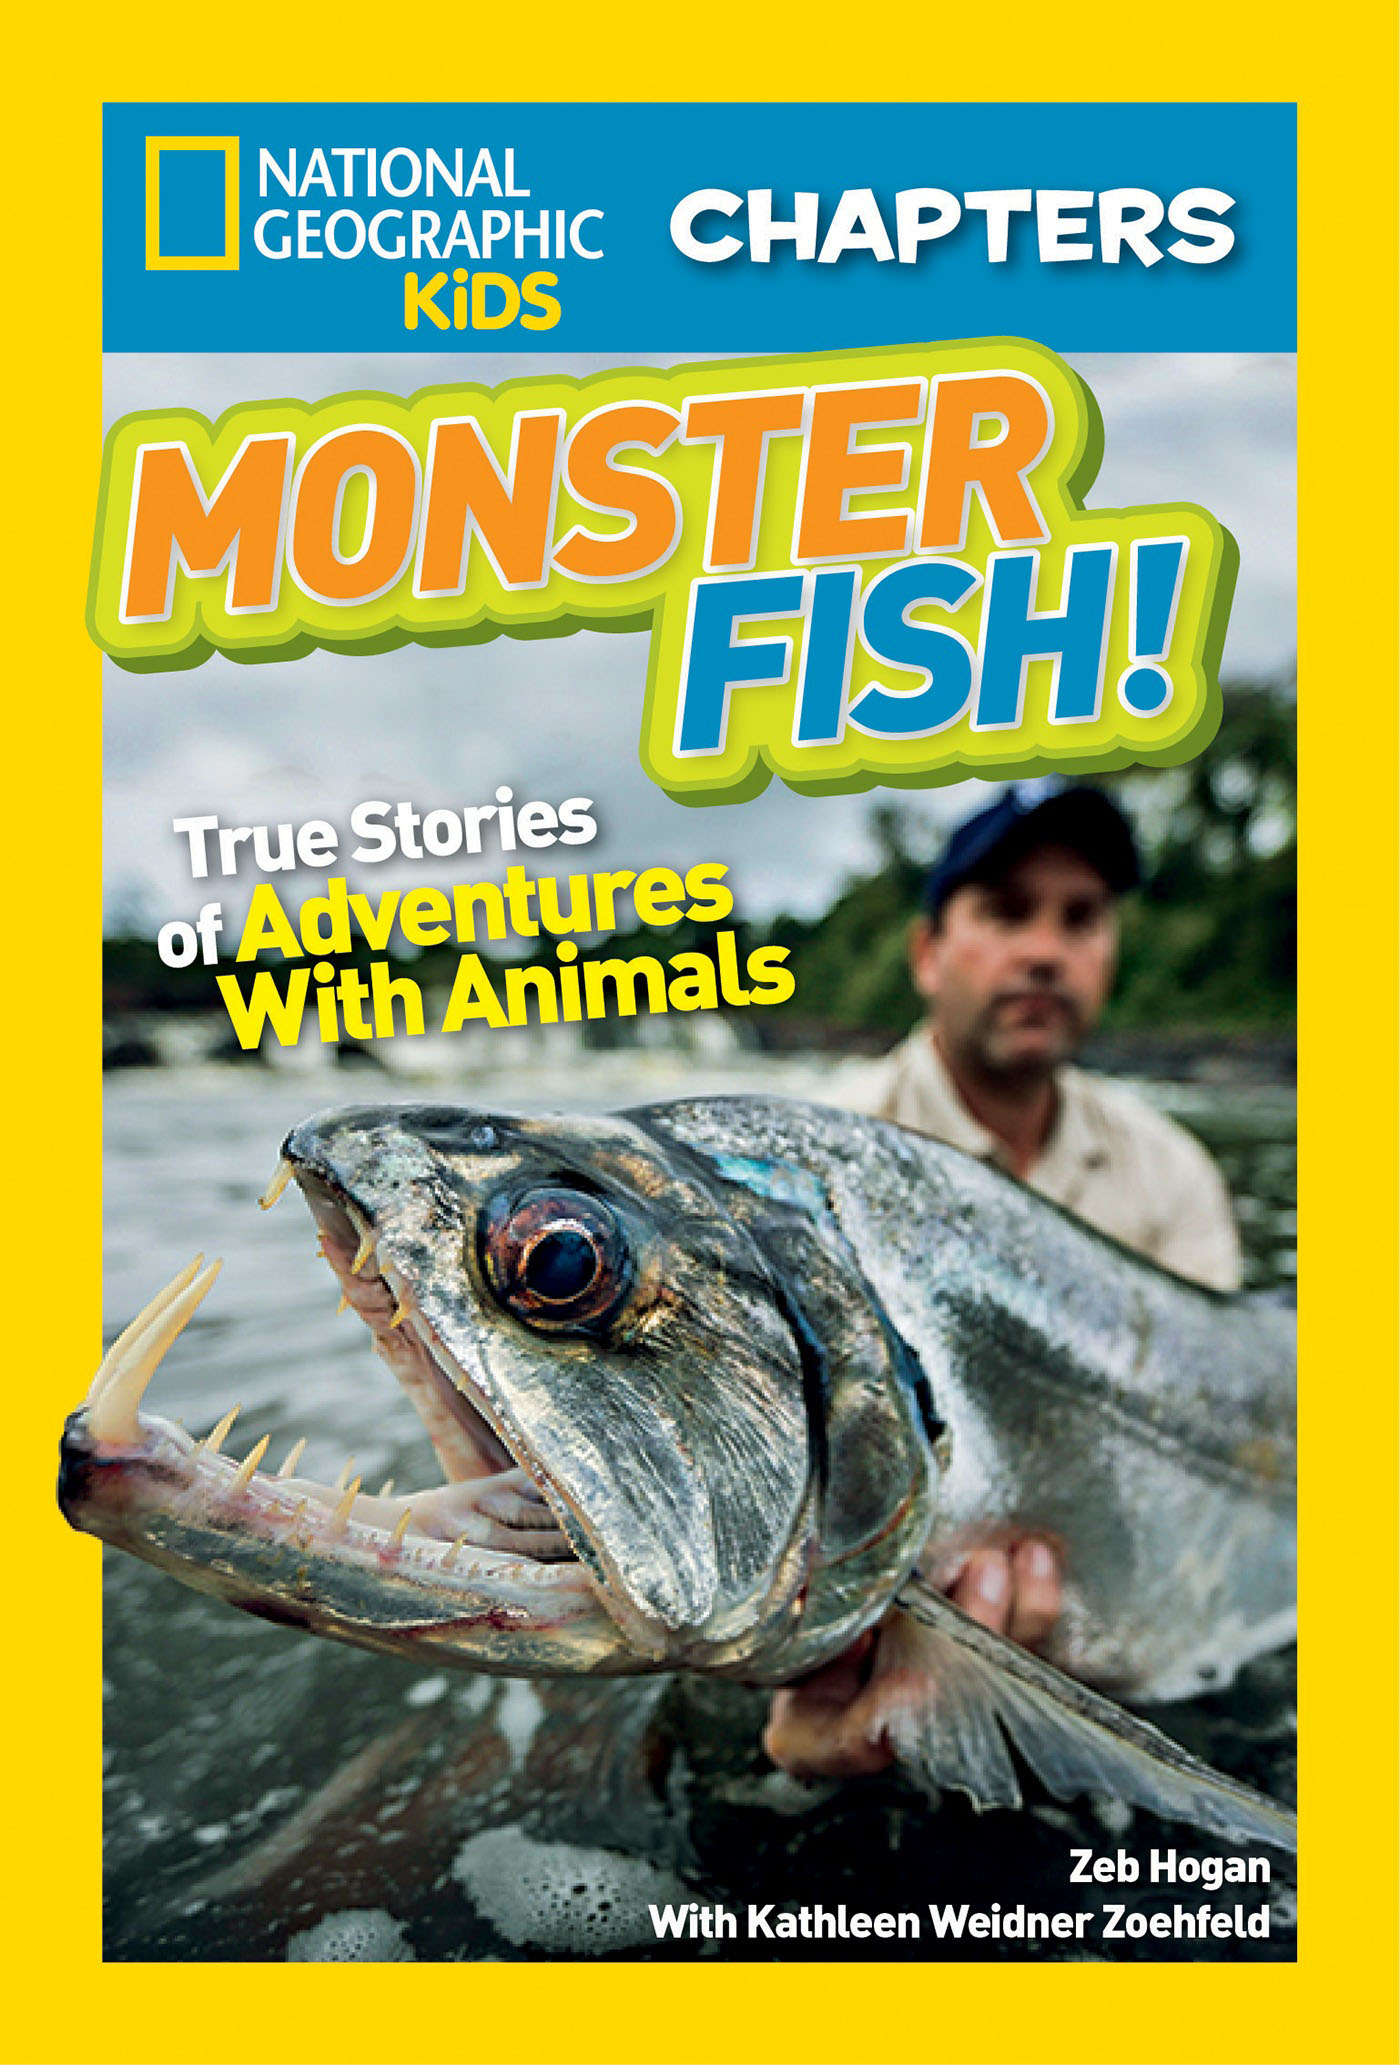 National Geographic Kids Chapters: Monster Fish! national geographic kids chapters monster fish